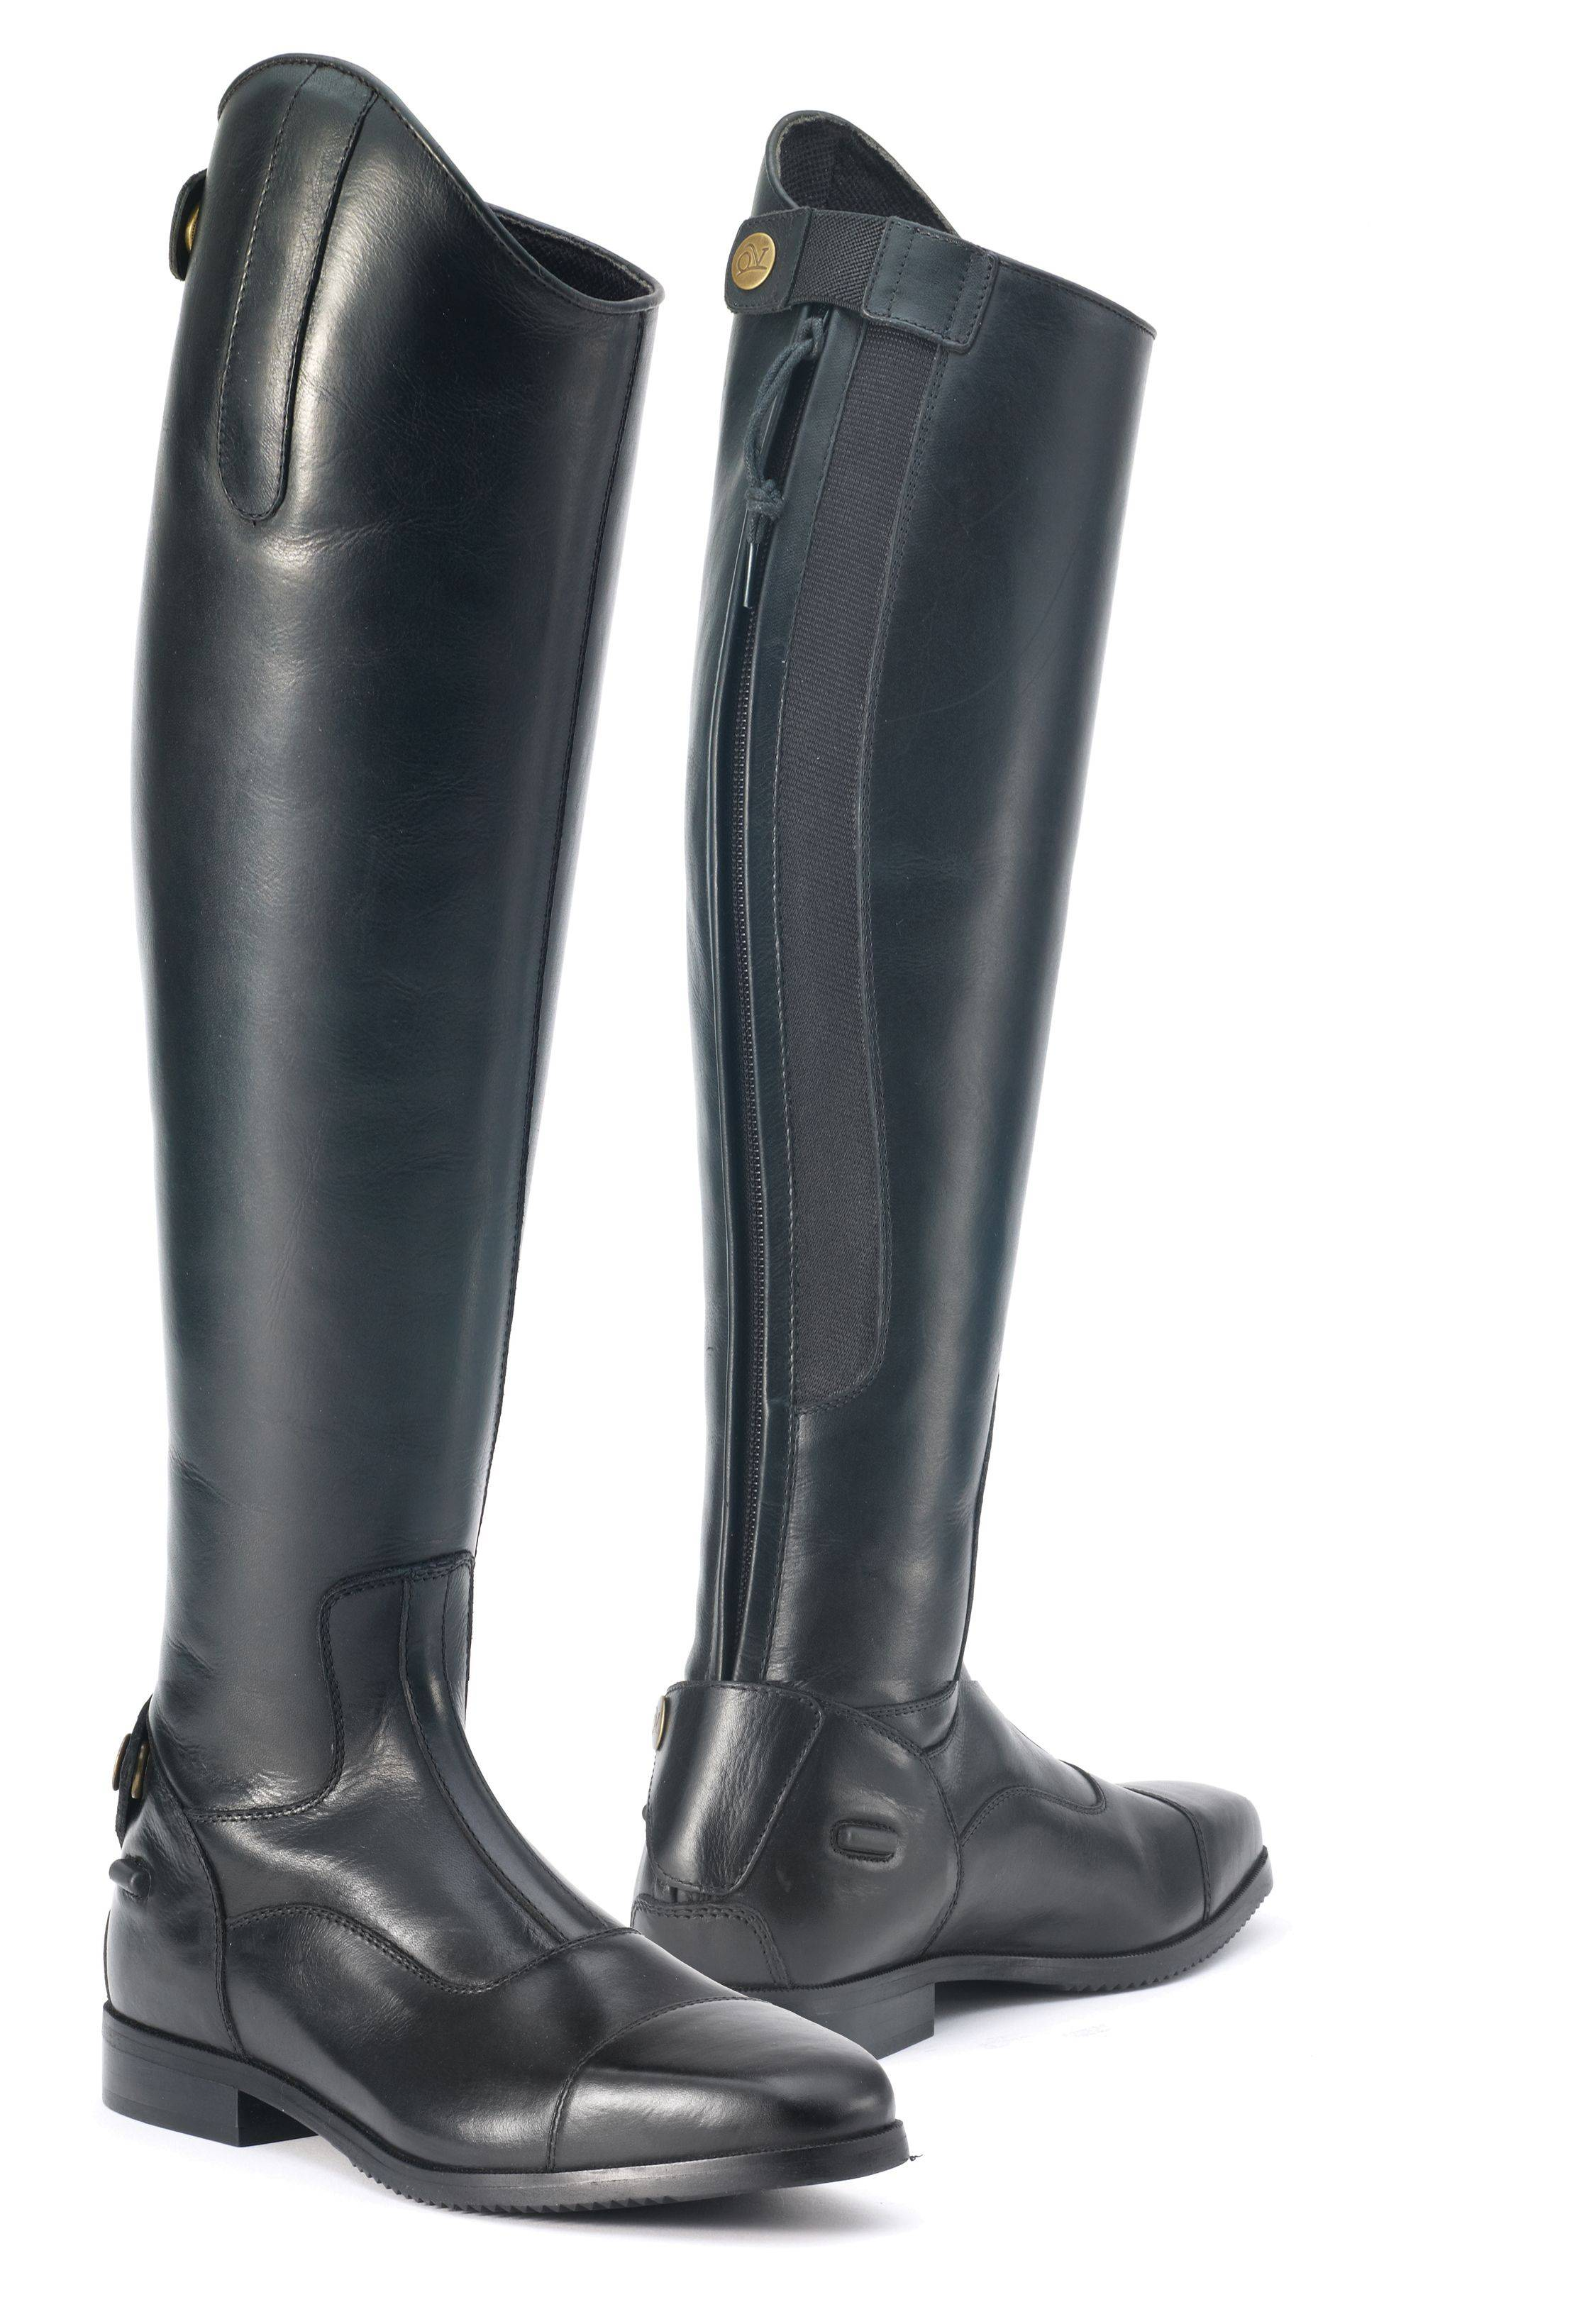 Ovation Olympia Tall Boots - Ladies, Black